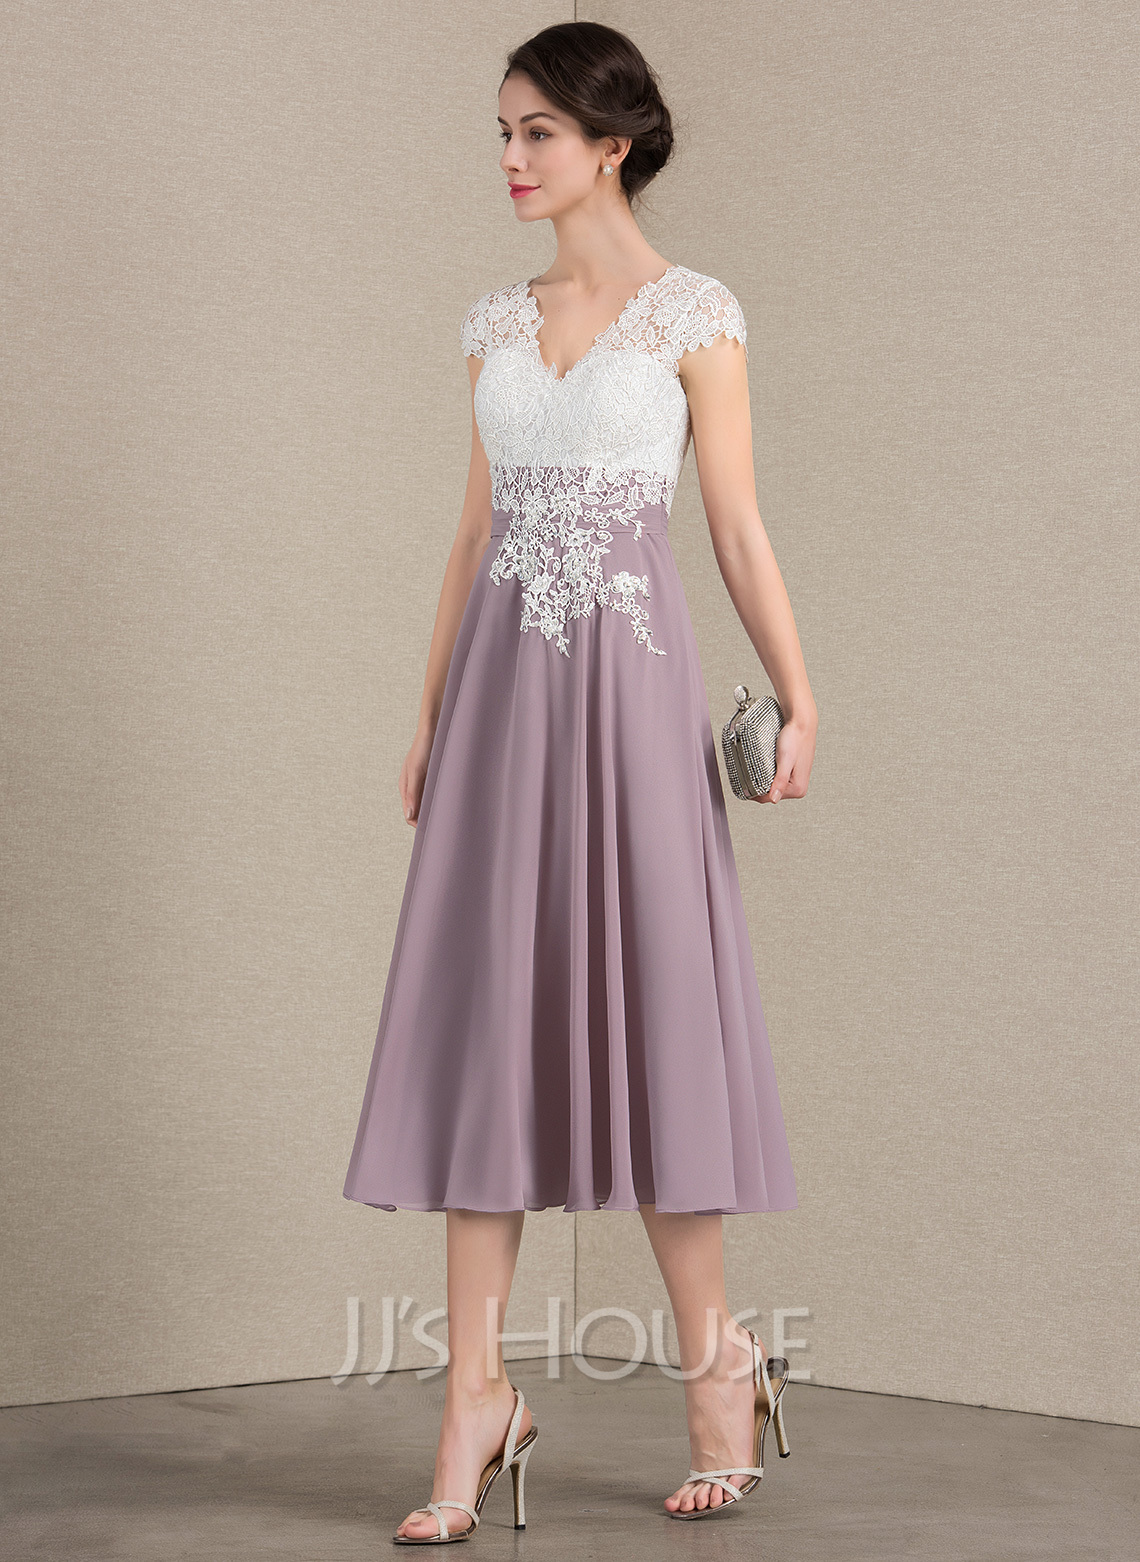 573c6231ad A-Line Princess V-neck Tea-Length Chiffon Lace Mother of the Bride Dress   143390